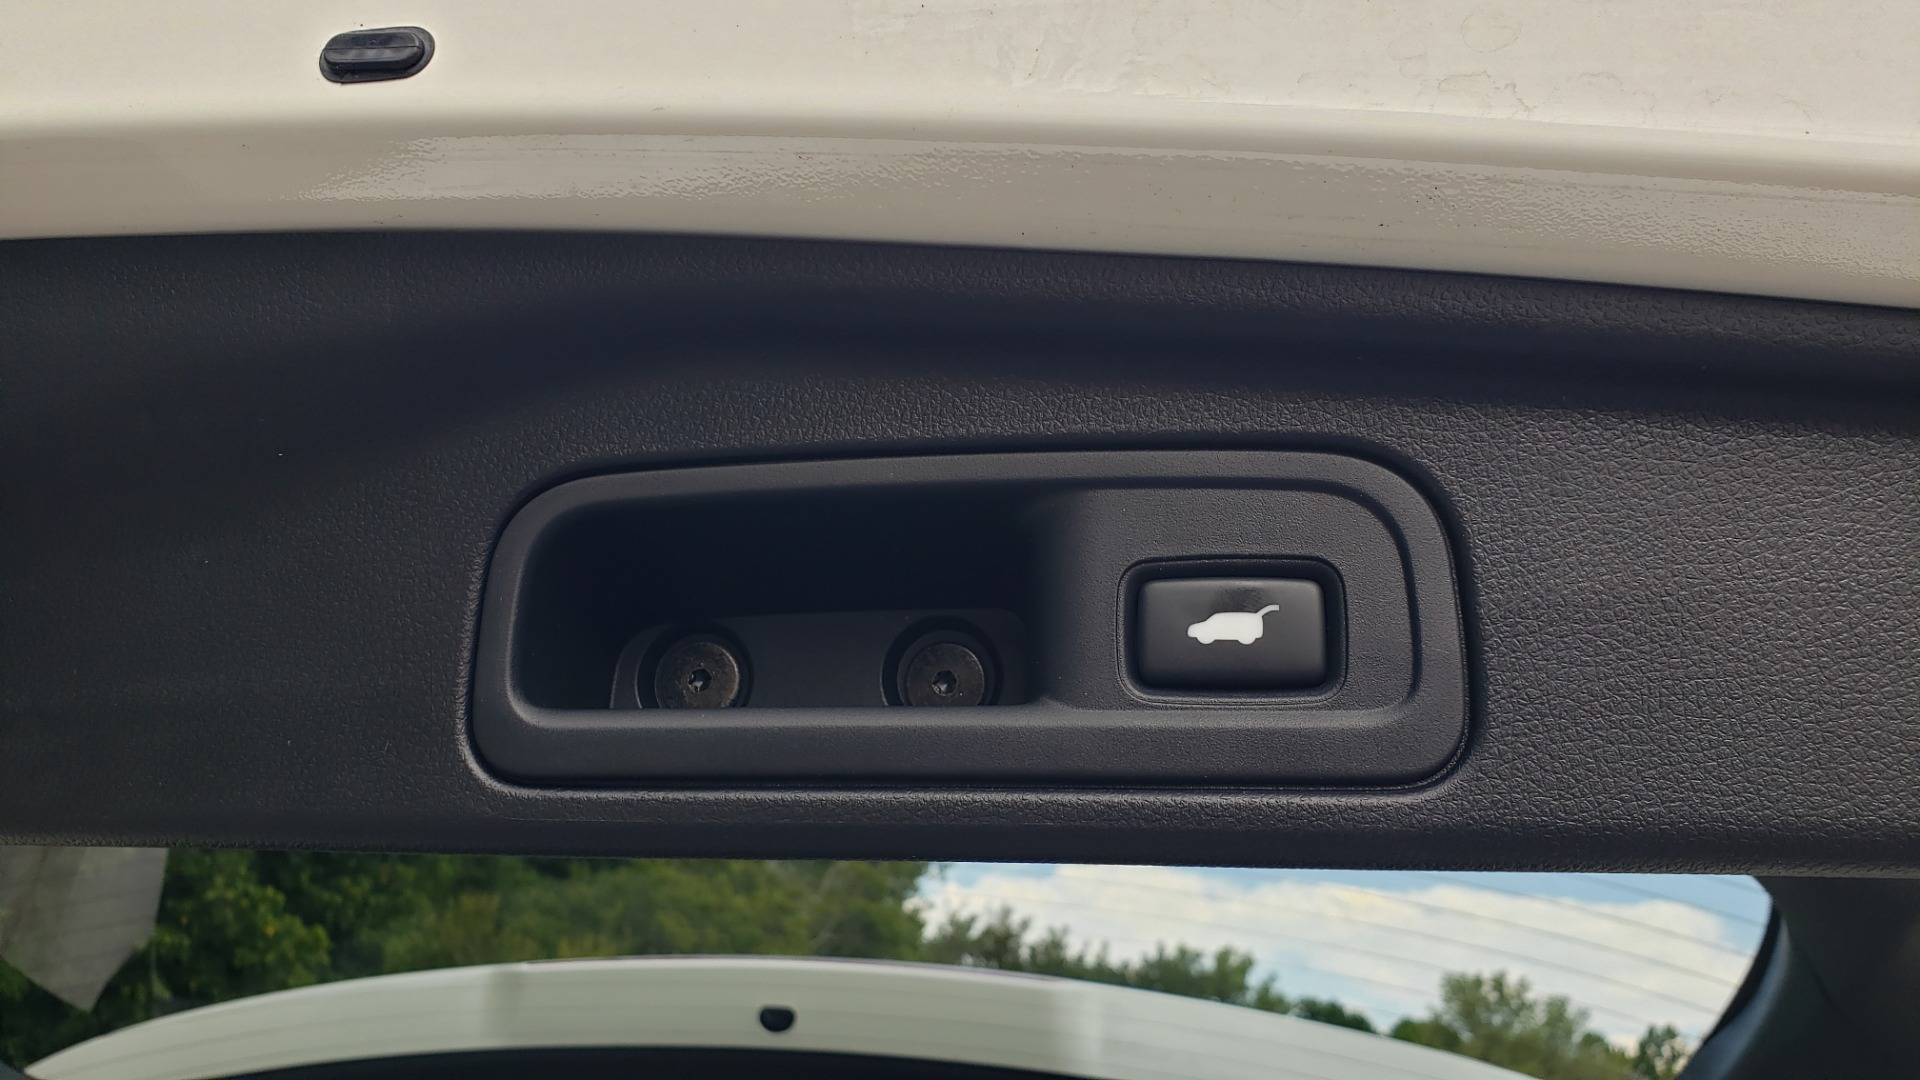 Used 2019 Honda PILOT EX-L / V6 / NAV / SUNROOF / DVD / 3-ROW / REARVIEW for sale Sold at Formula Imports in Charlotte NC 28227 21